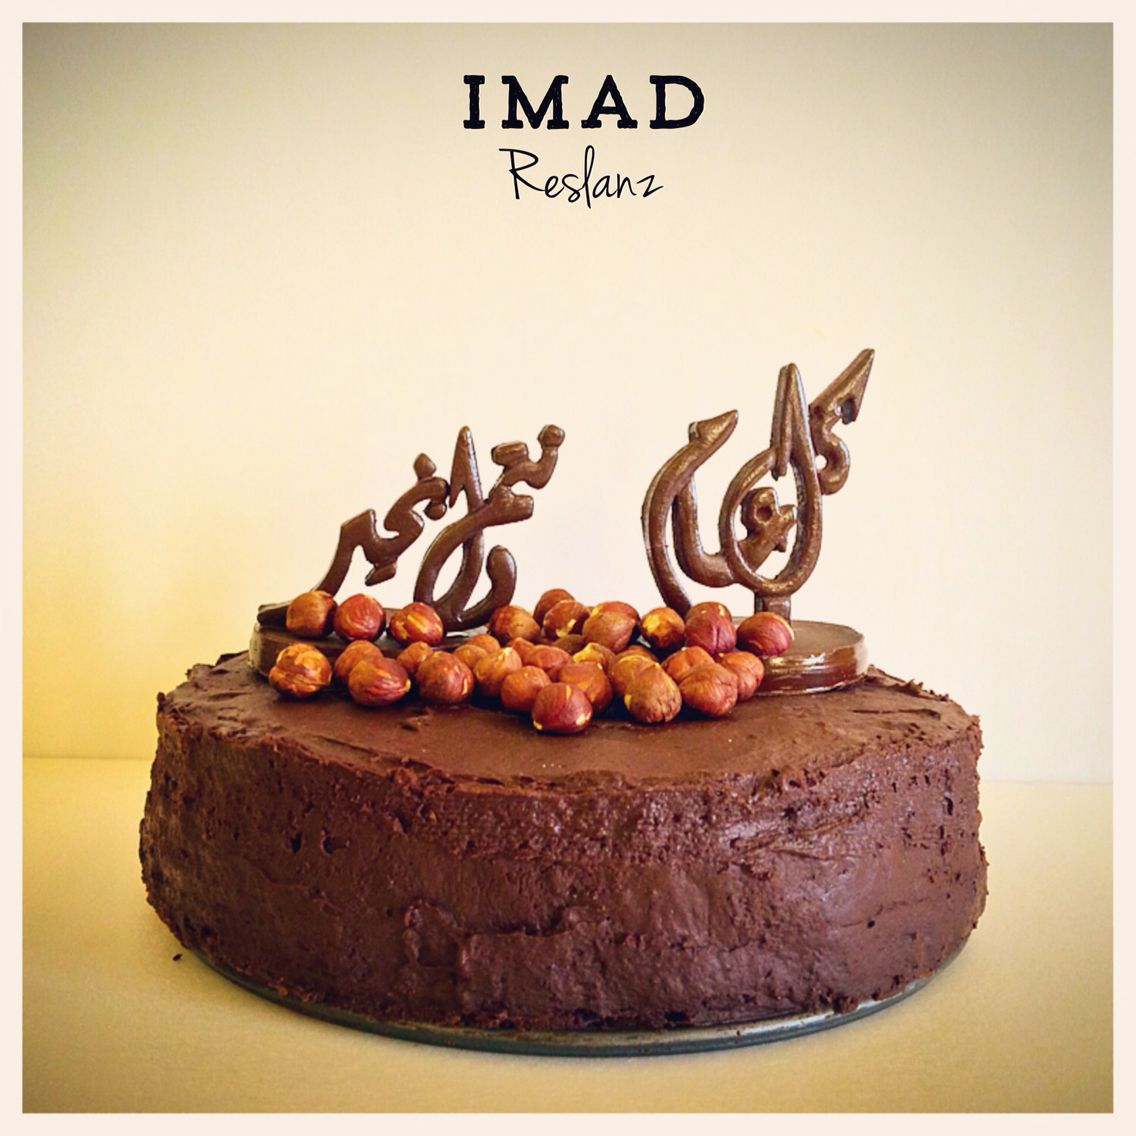 Chocolate cake with chocolate cake toppers in Arabic